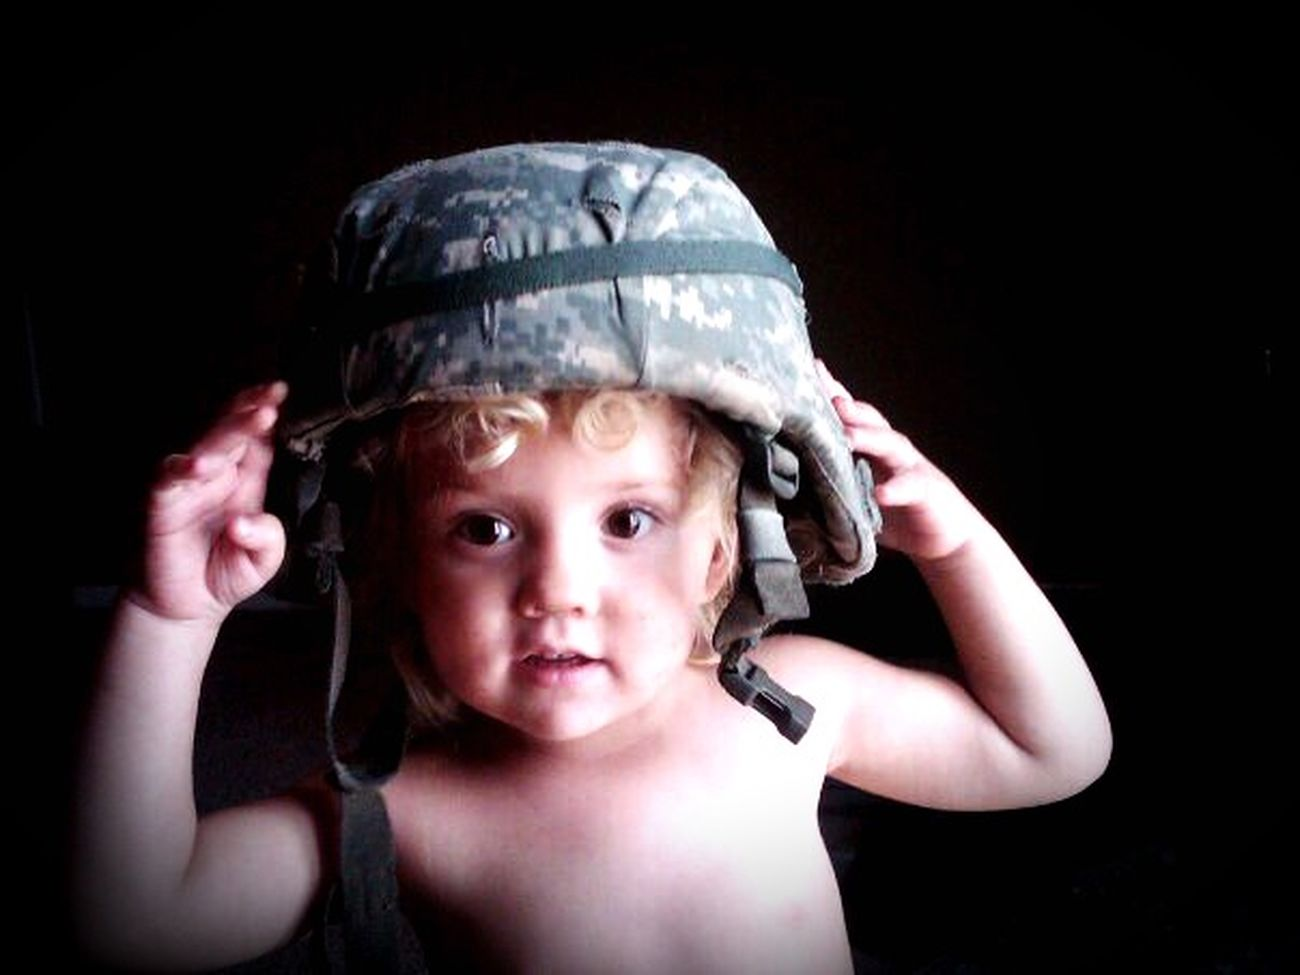 Baby Army Baby Army Girl Cute Simple Photography Natural Beauty Beautiful Little Taking Photos Check This Out Friend's daughter wearing her daddy's helmet.